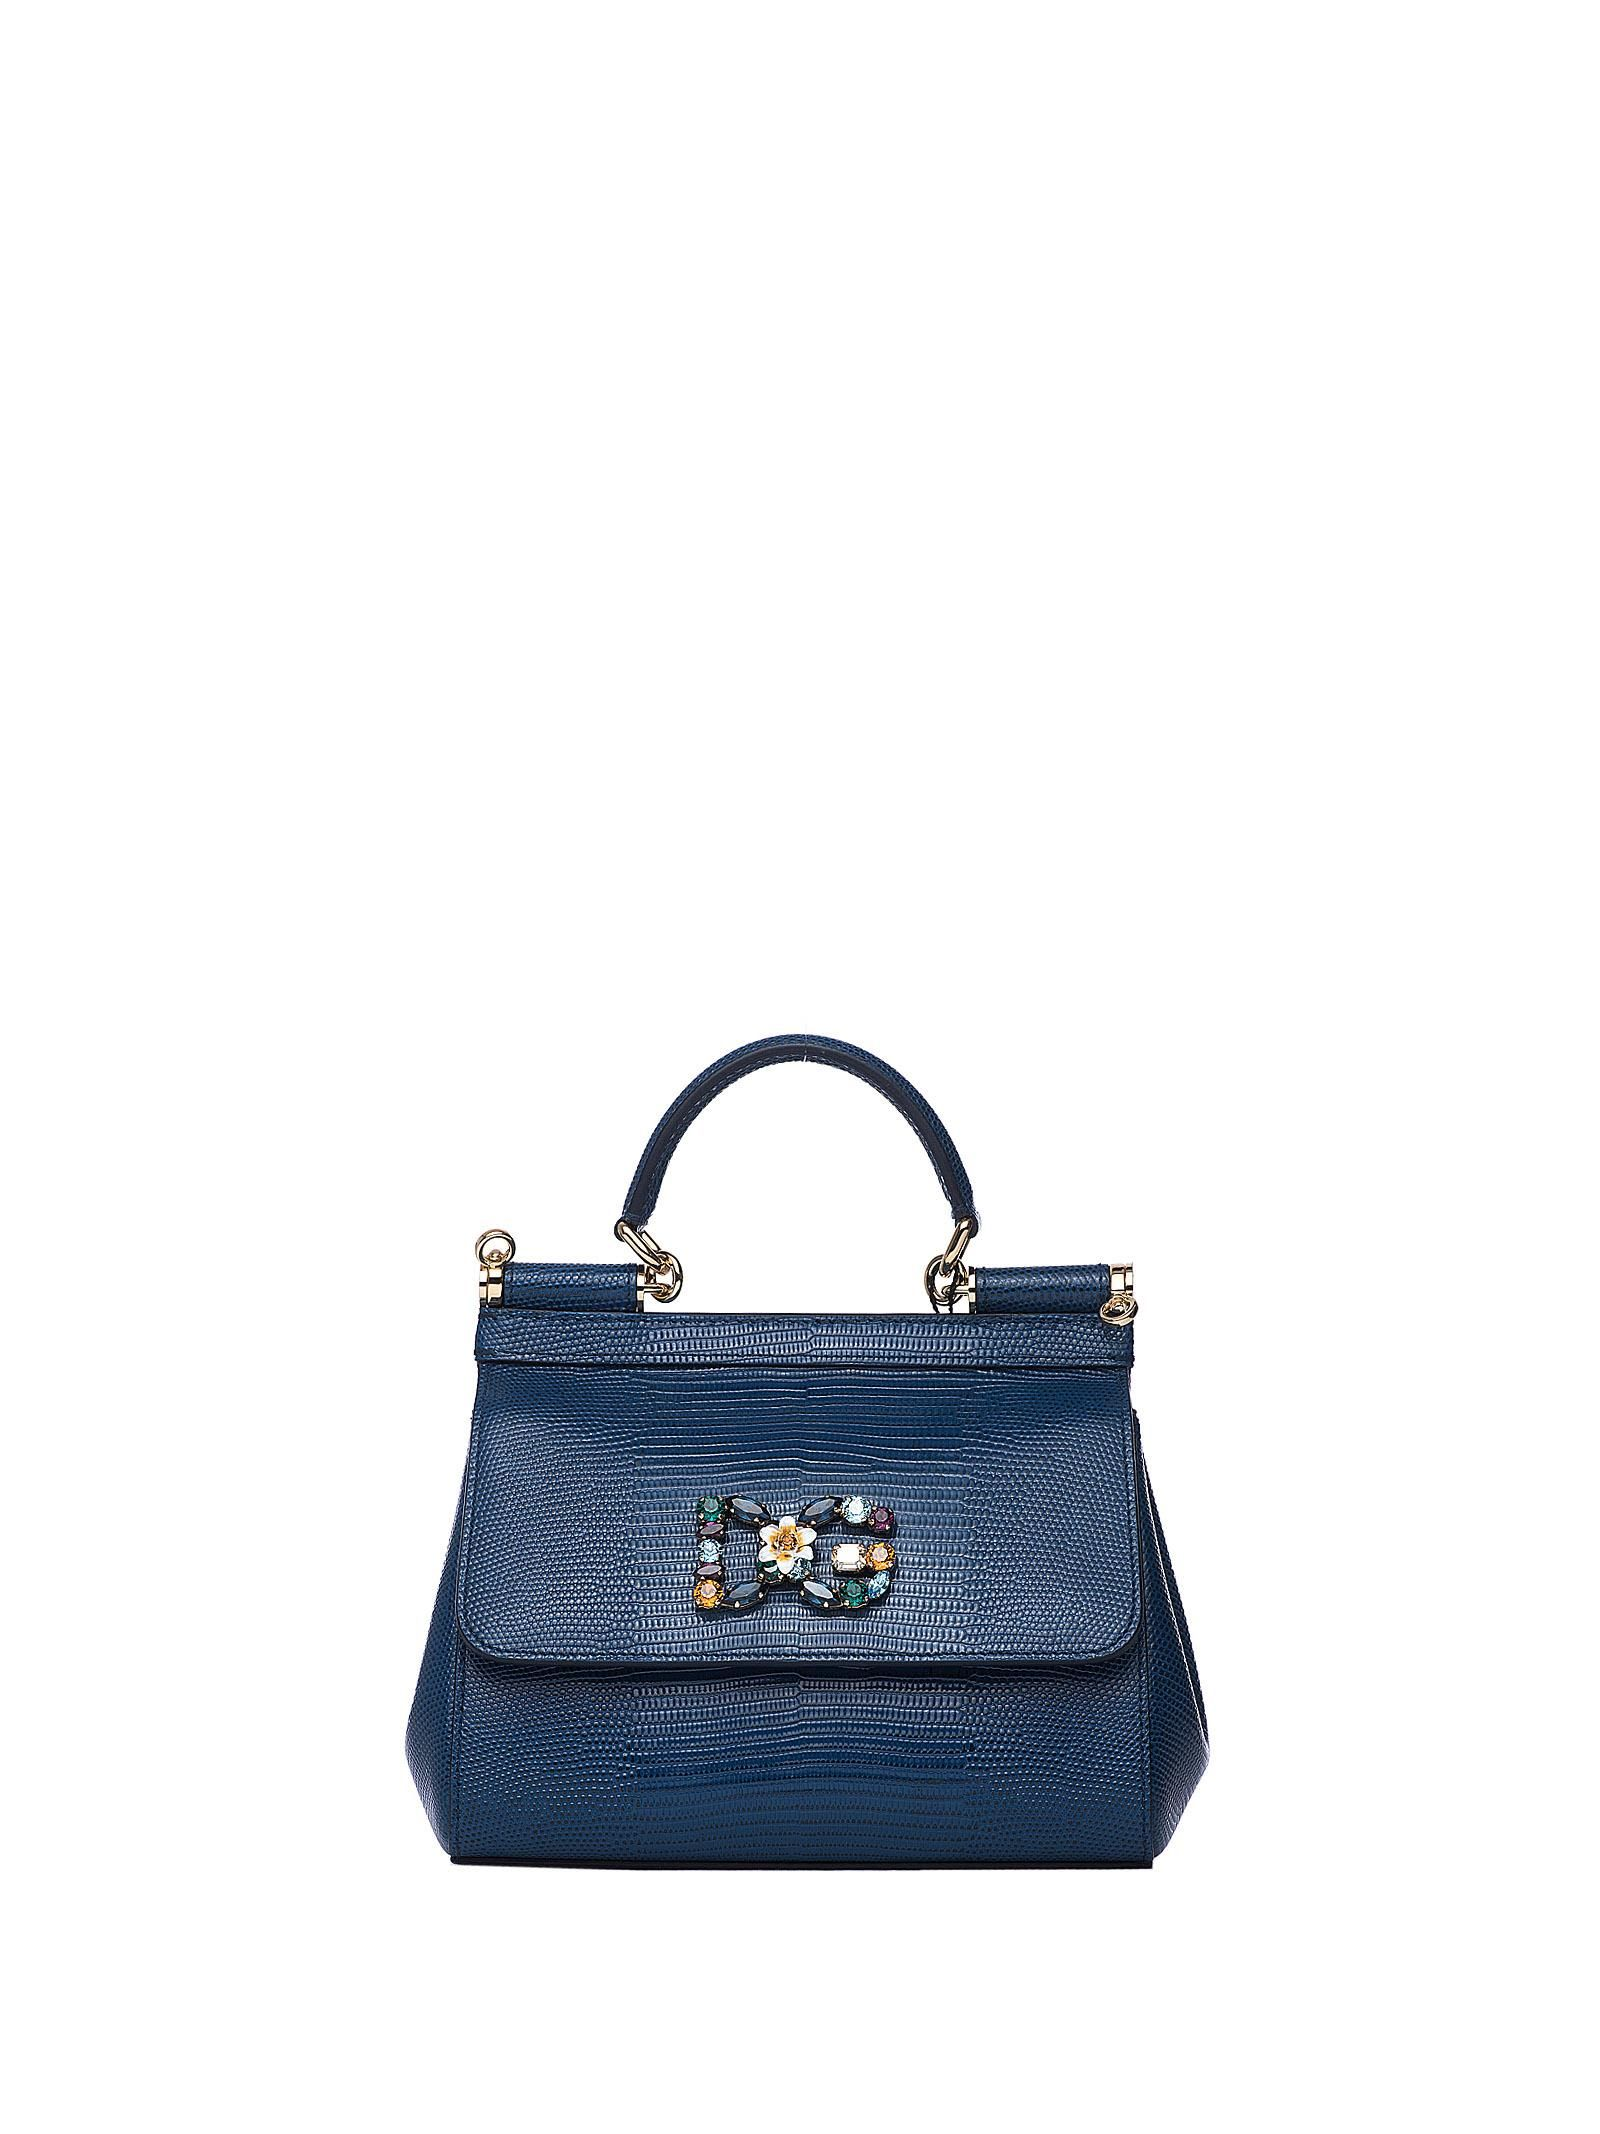 ea919275fa DOLCE & GABBANA DOLCE & GABBANA SICILY BLUE IGUANA PRINT LEATHER BAG WITH  DG LOGO. #dolcegabbana #bags #shoulder bags #hand bags #lining #leather  #crystal #